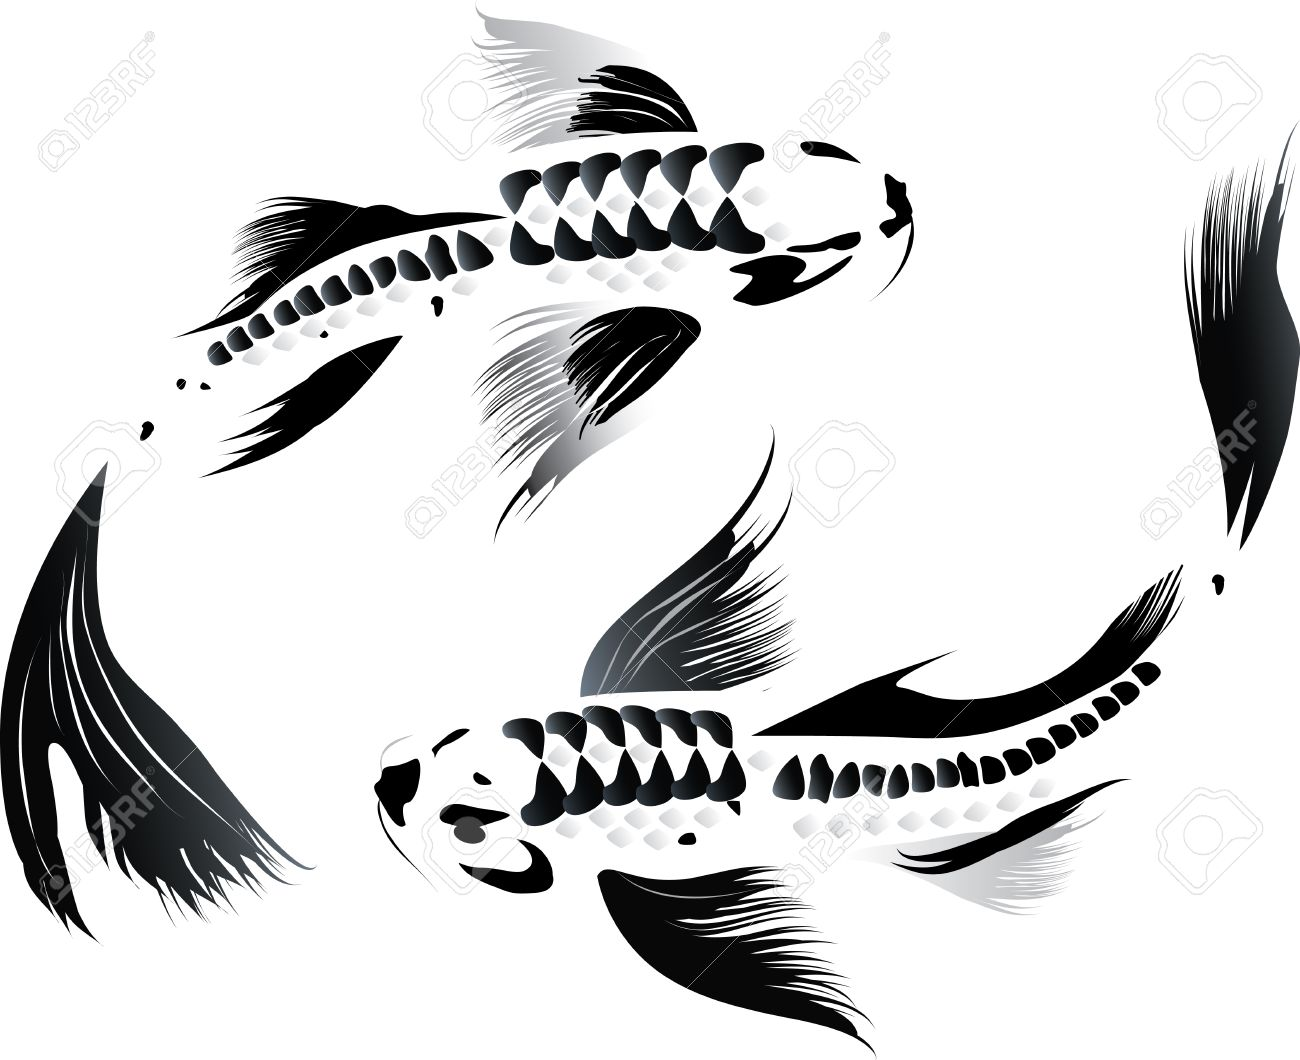 Artistic vector illustration of koi carps couple in water - 40223916